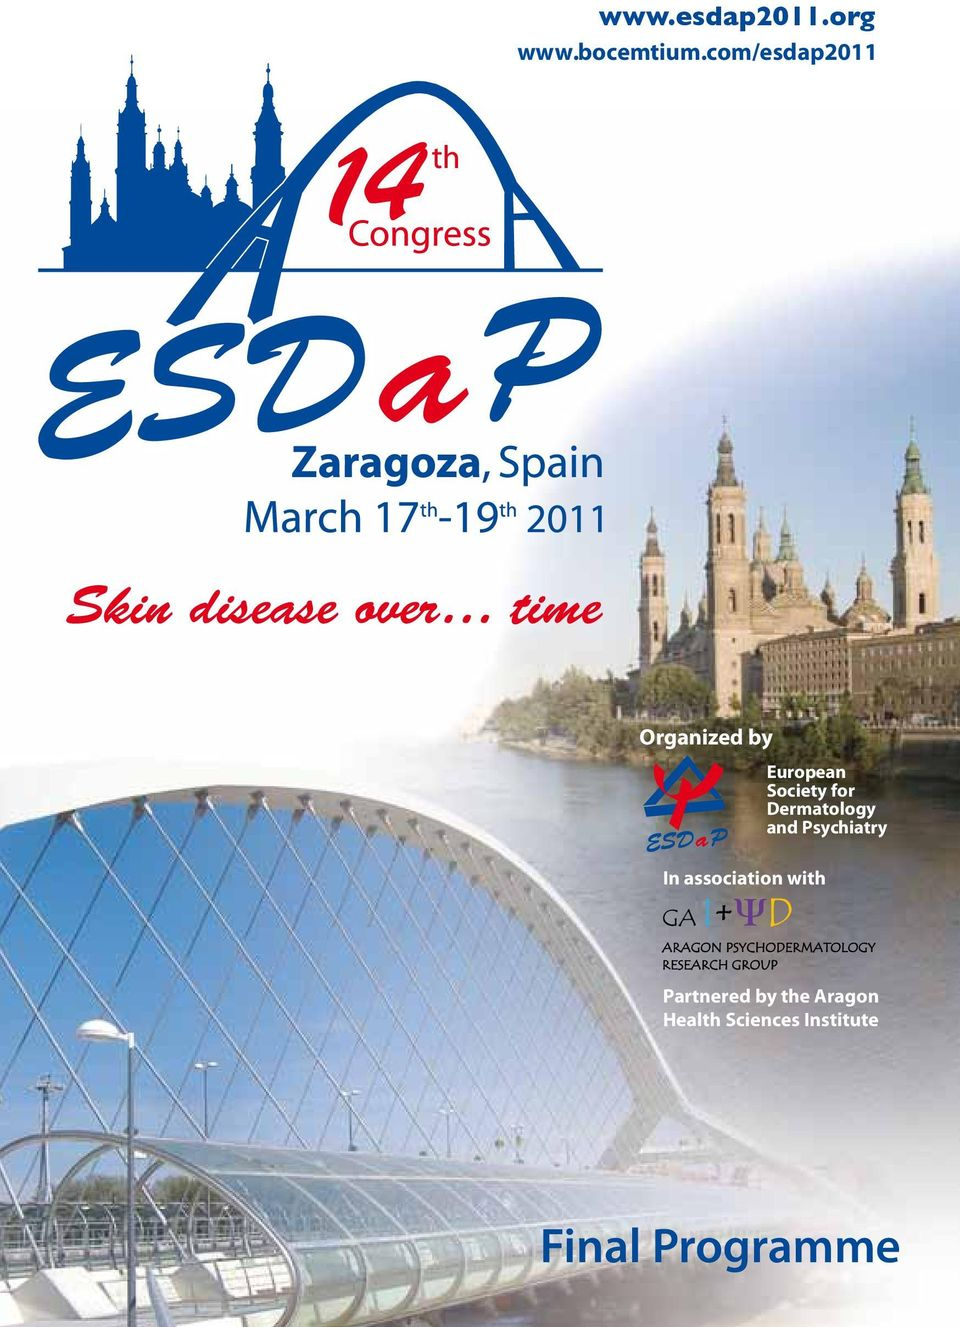 European Society for Dermatology and Psychiatry